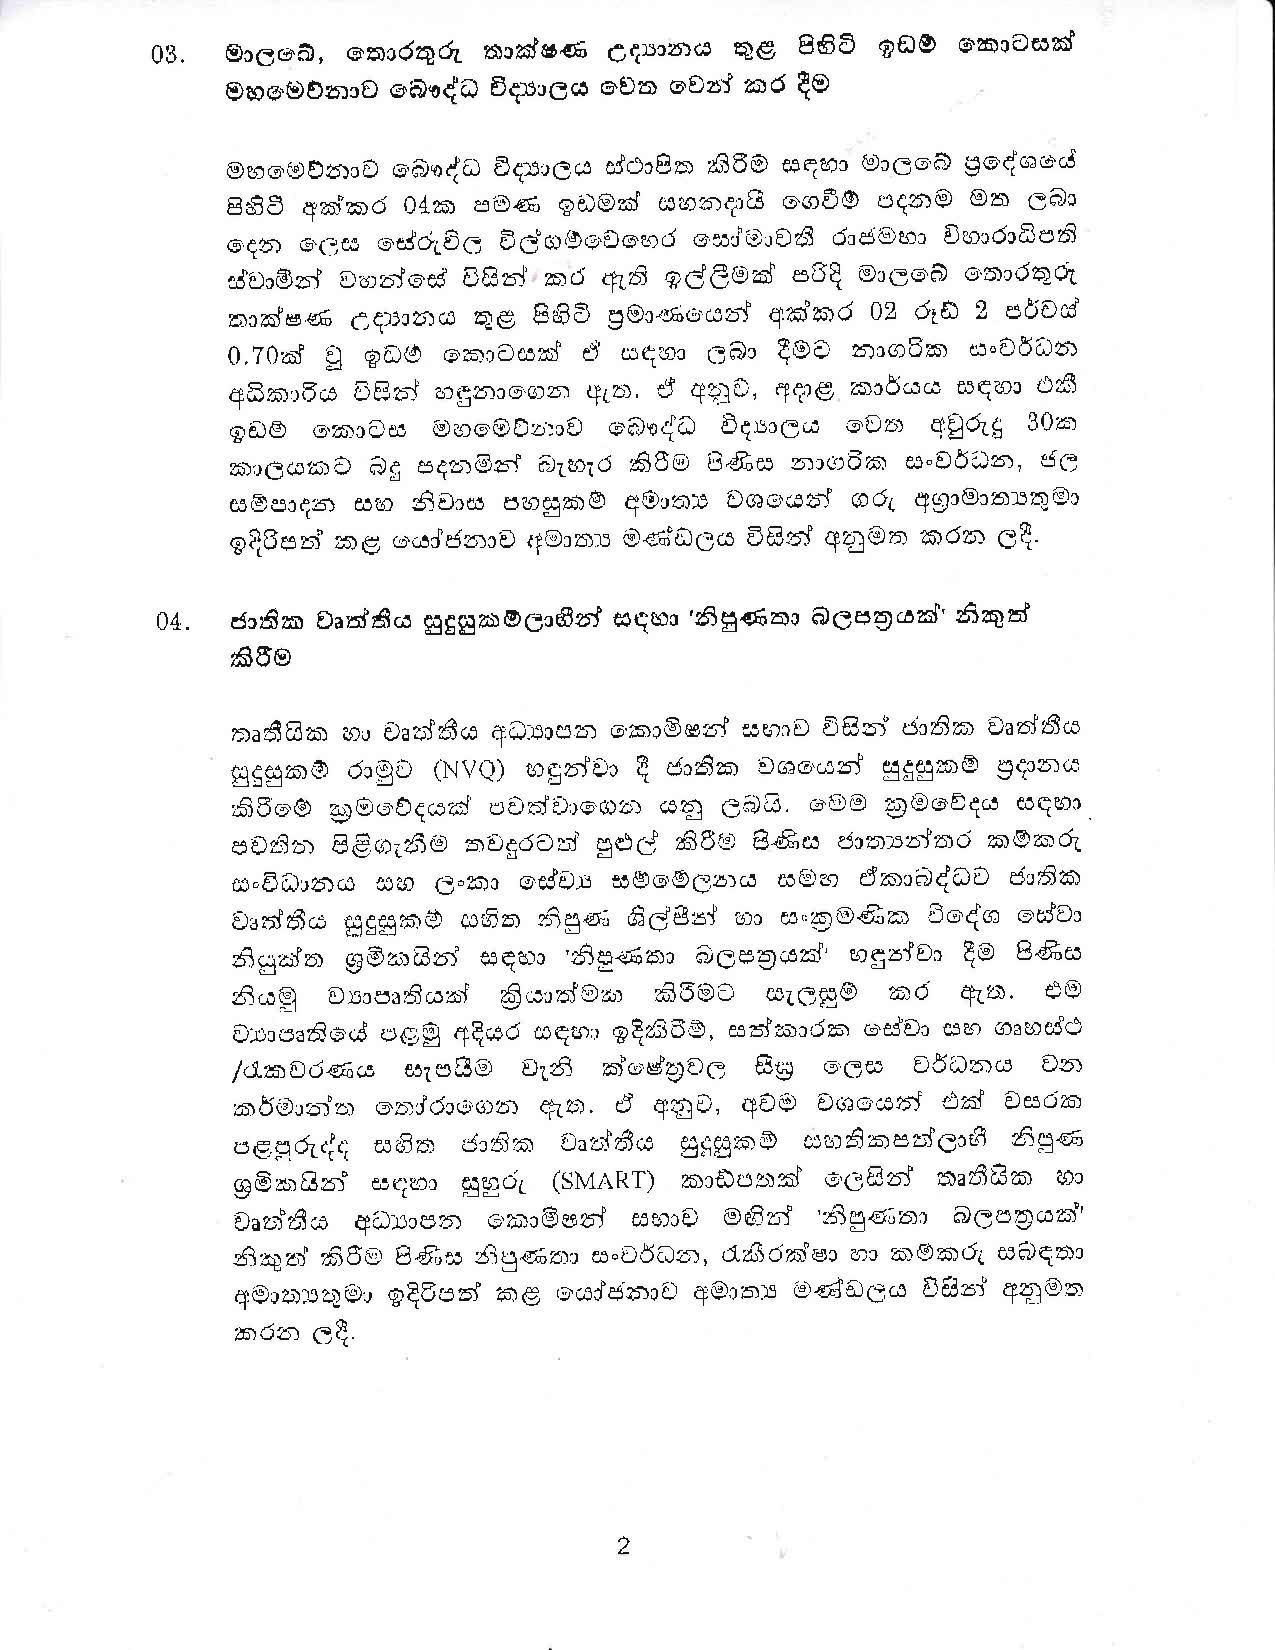 Cabinet Decision on sinhala 18.03.2020 page 002